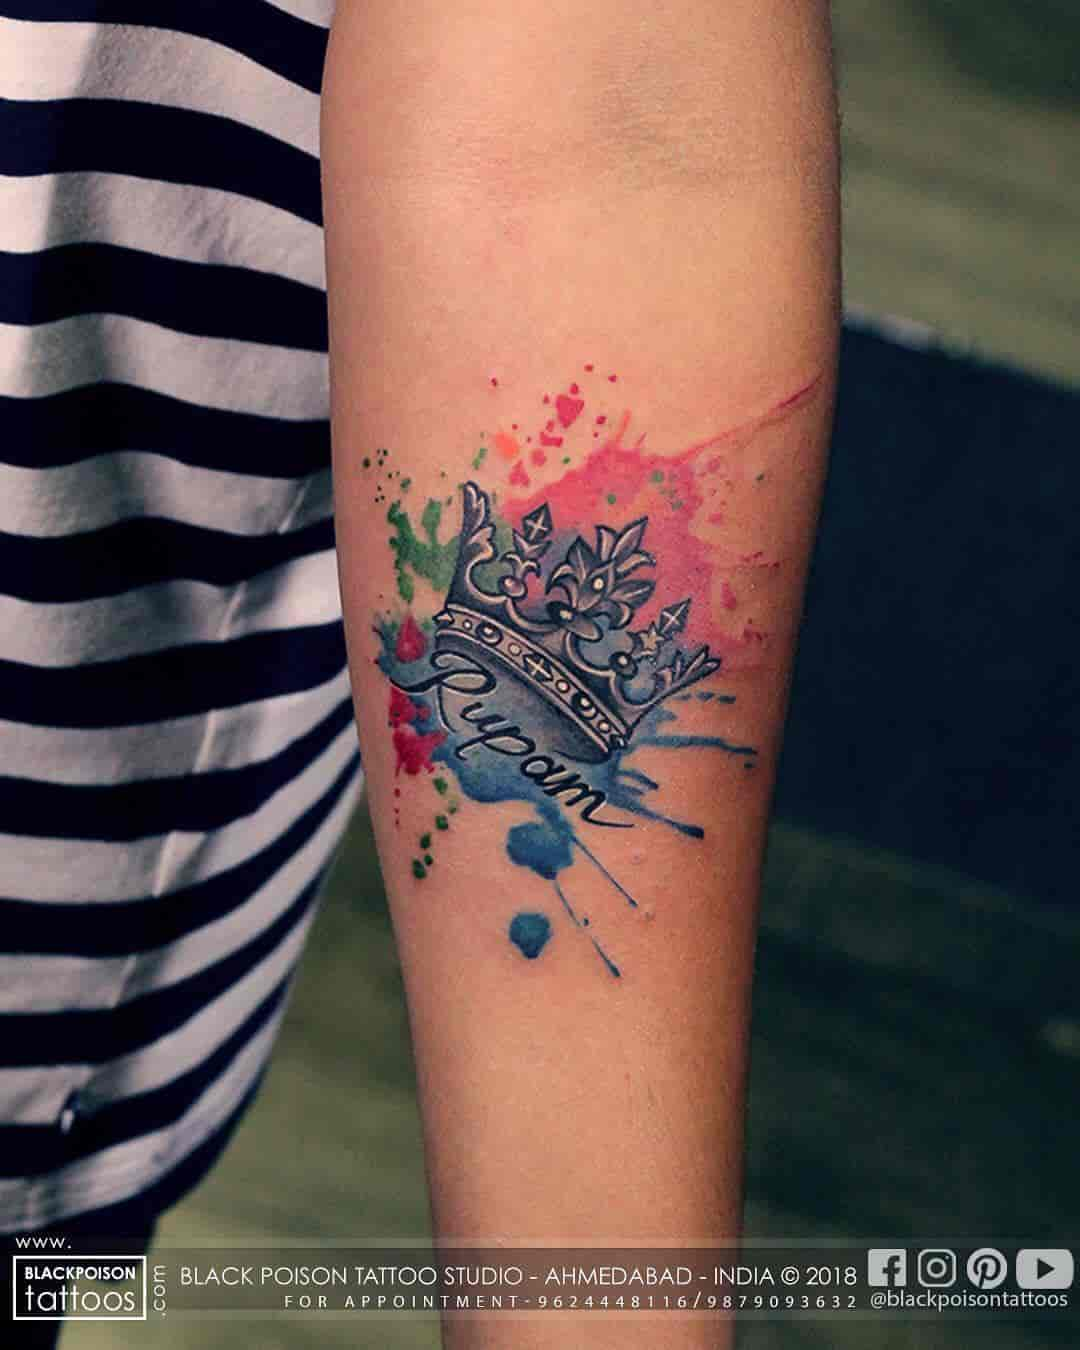 3a7938662b177 Black Poison Tattoos Photos, Vastrapur, Ahmedabad- Pictures & Images  Gallery - Justdial